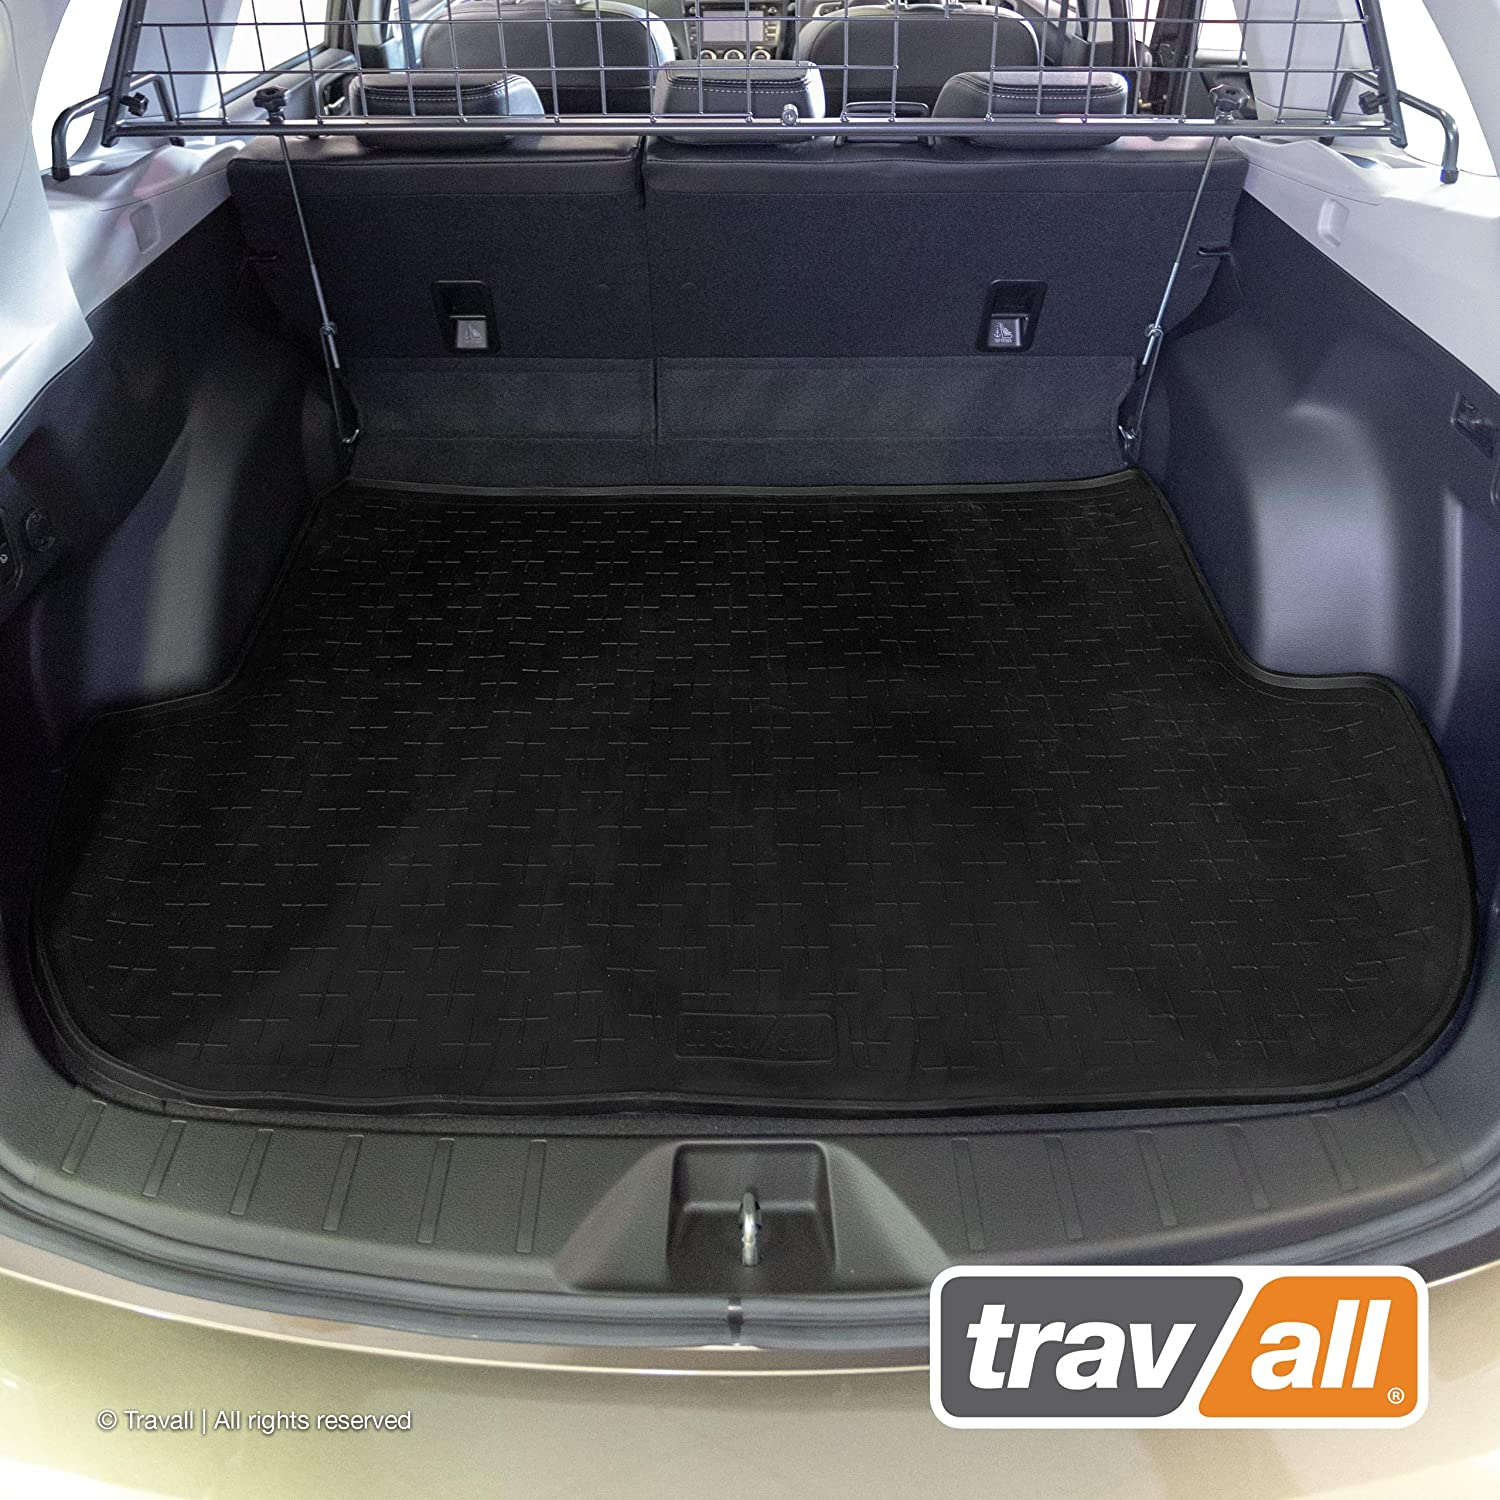 Travall Liner Compatible with Subaru Forester SJ (2012-2018) TBM1100 - All-Weather Black Rubber Trunk Mat Liner